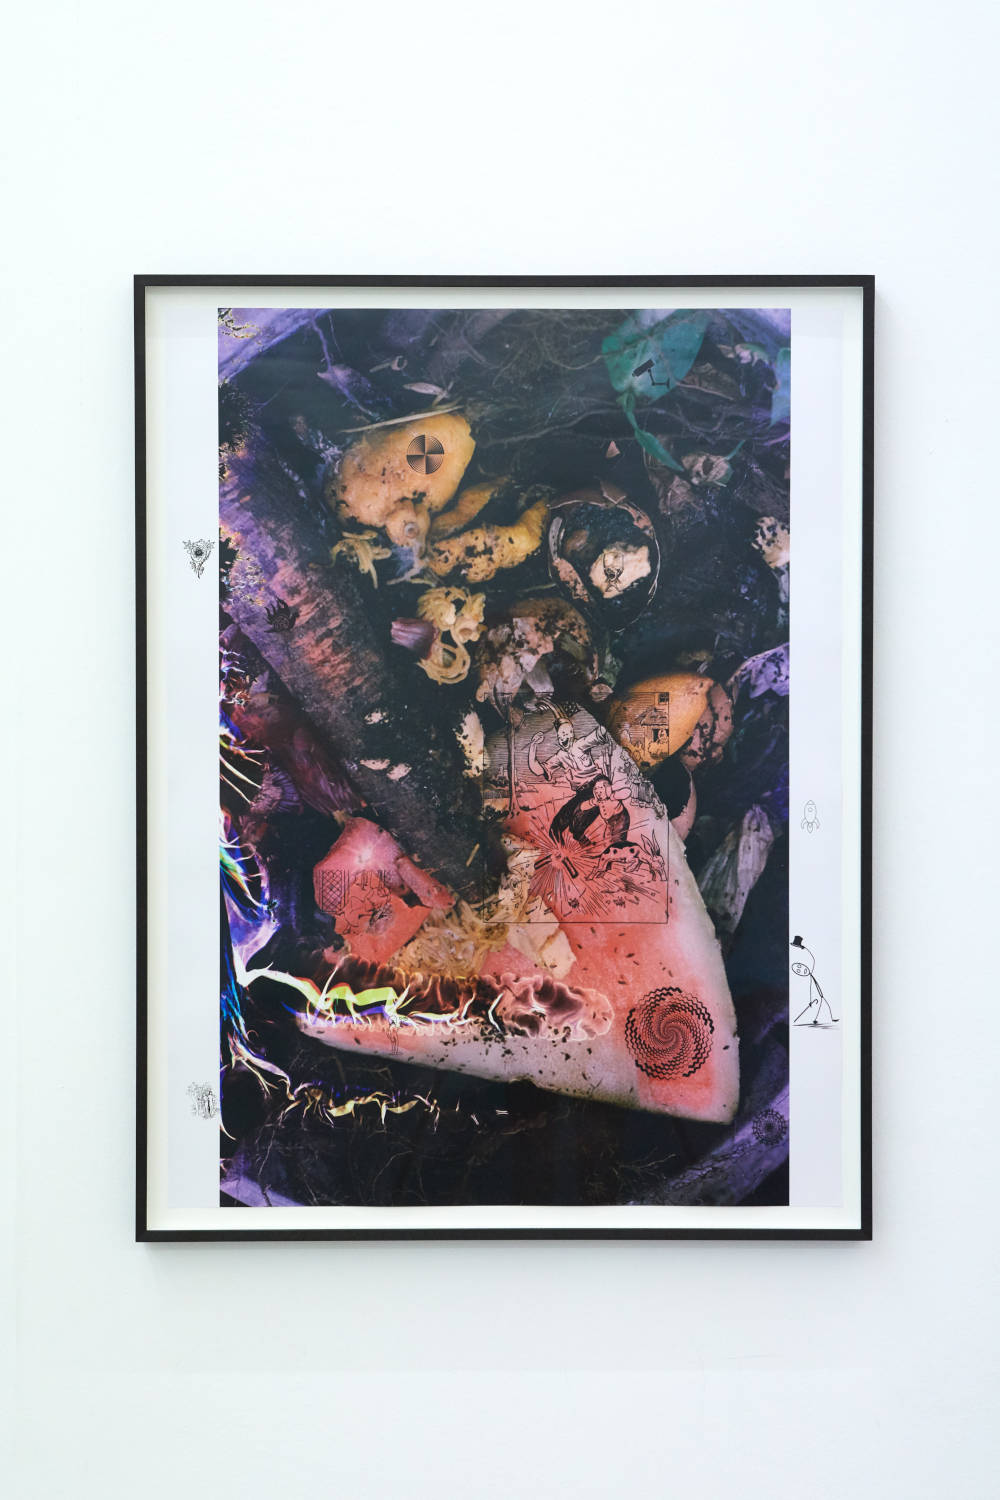 Ryan Foerster, re-compost, 2014-2019. Unique digital c-print. Image Dimensions: 103 x 77 cm (40.55 x 30.31 inches) Courtesy of the artist & VNH Gallery. Photo: Johanna Benaïnous